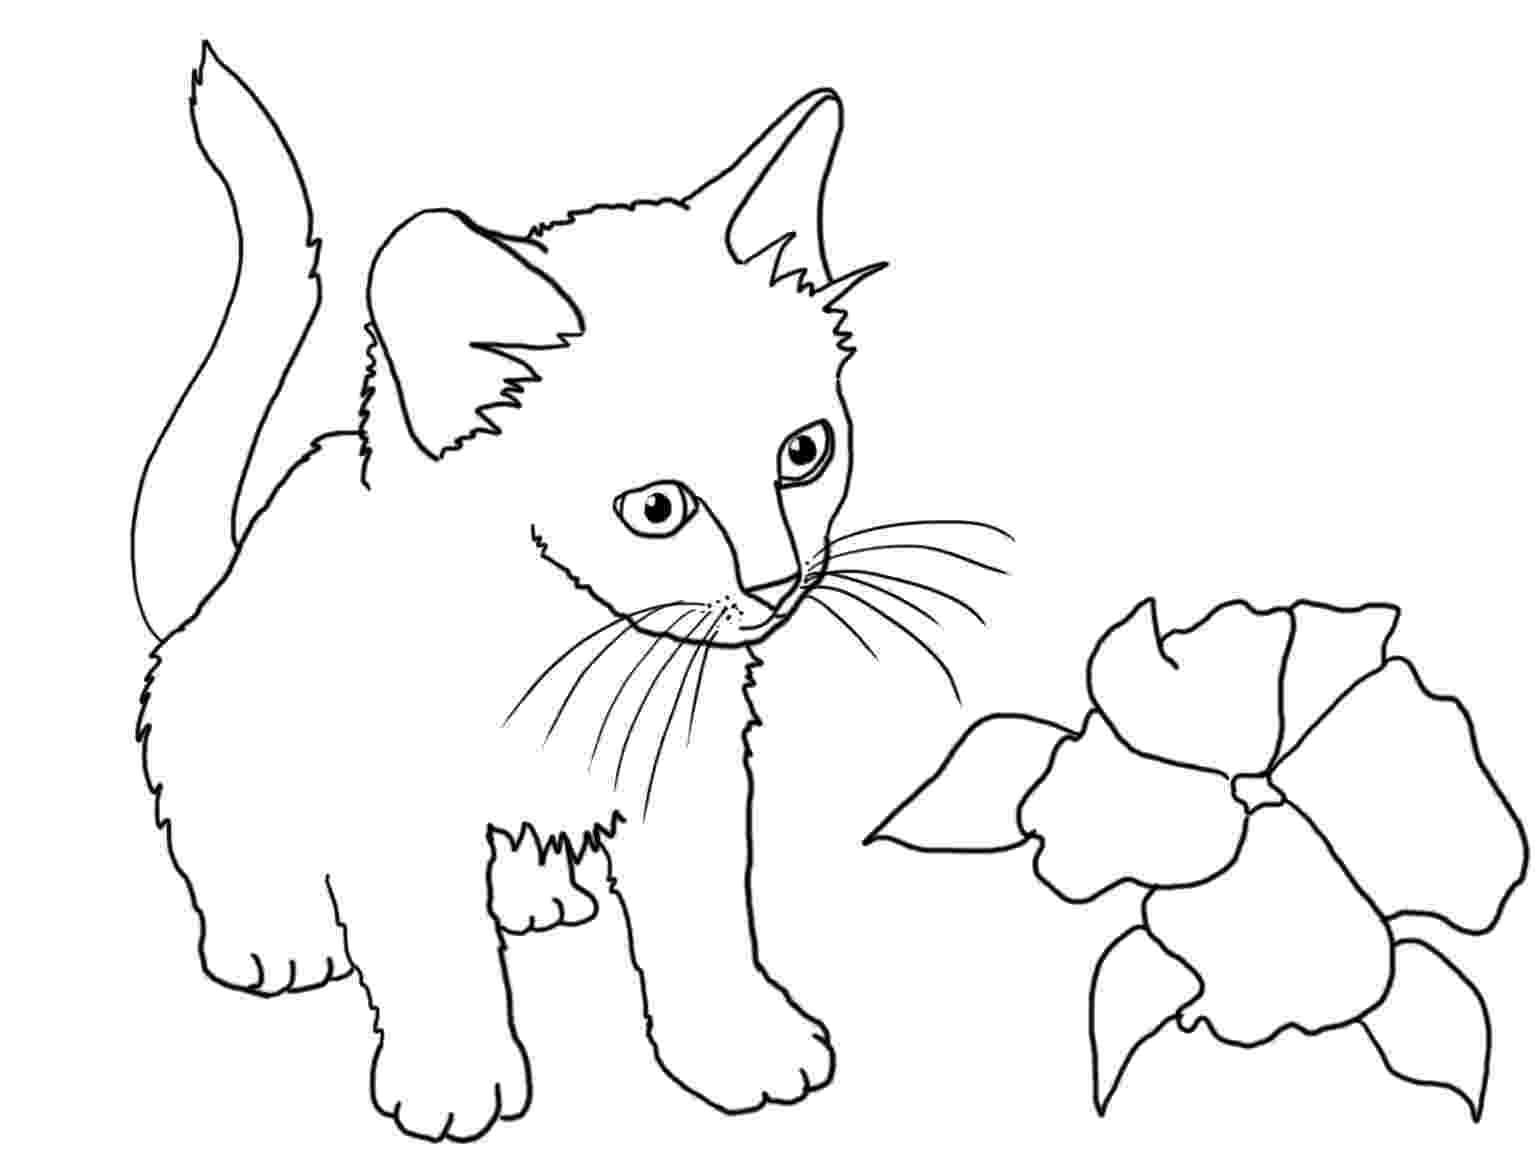 coloring pages of kittens to print cat coloring pages pages to kittens of print coloring